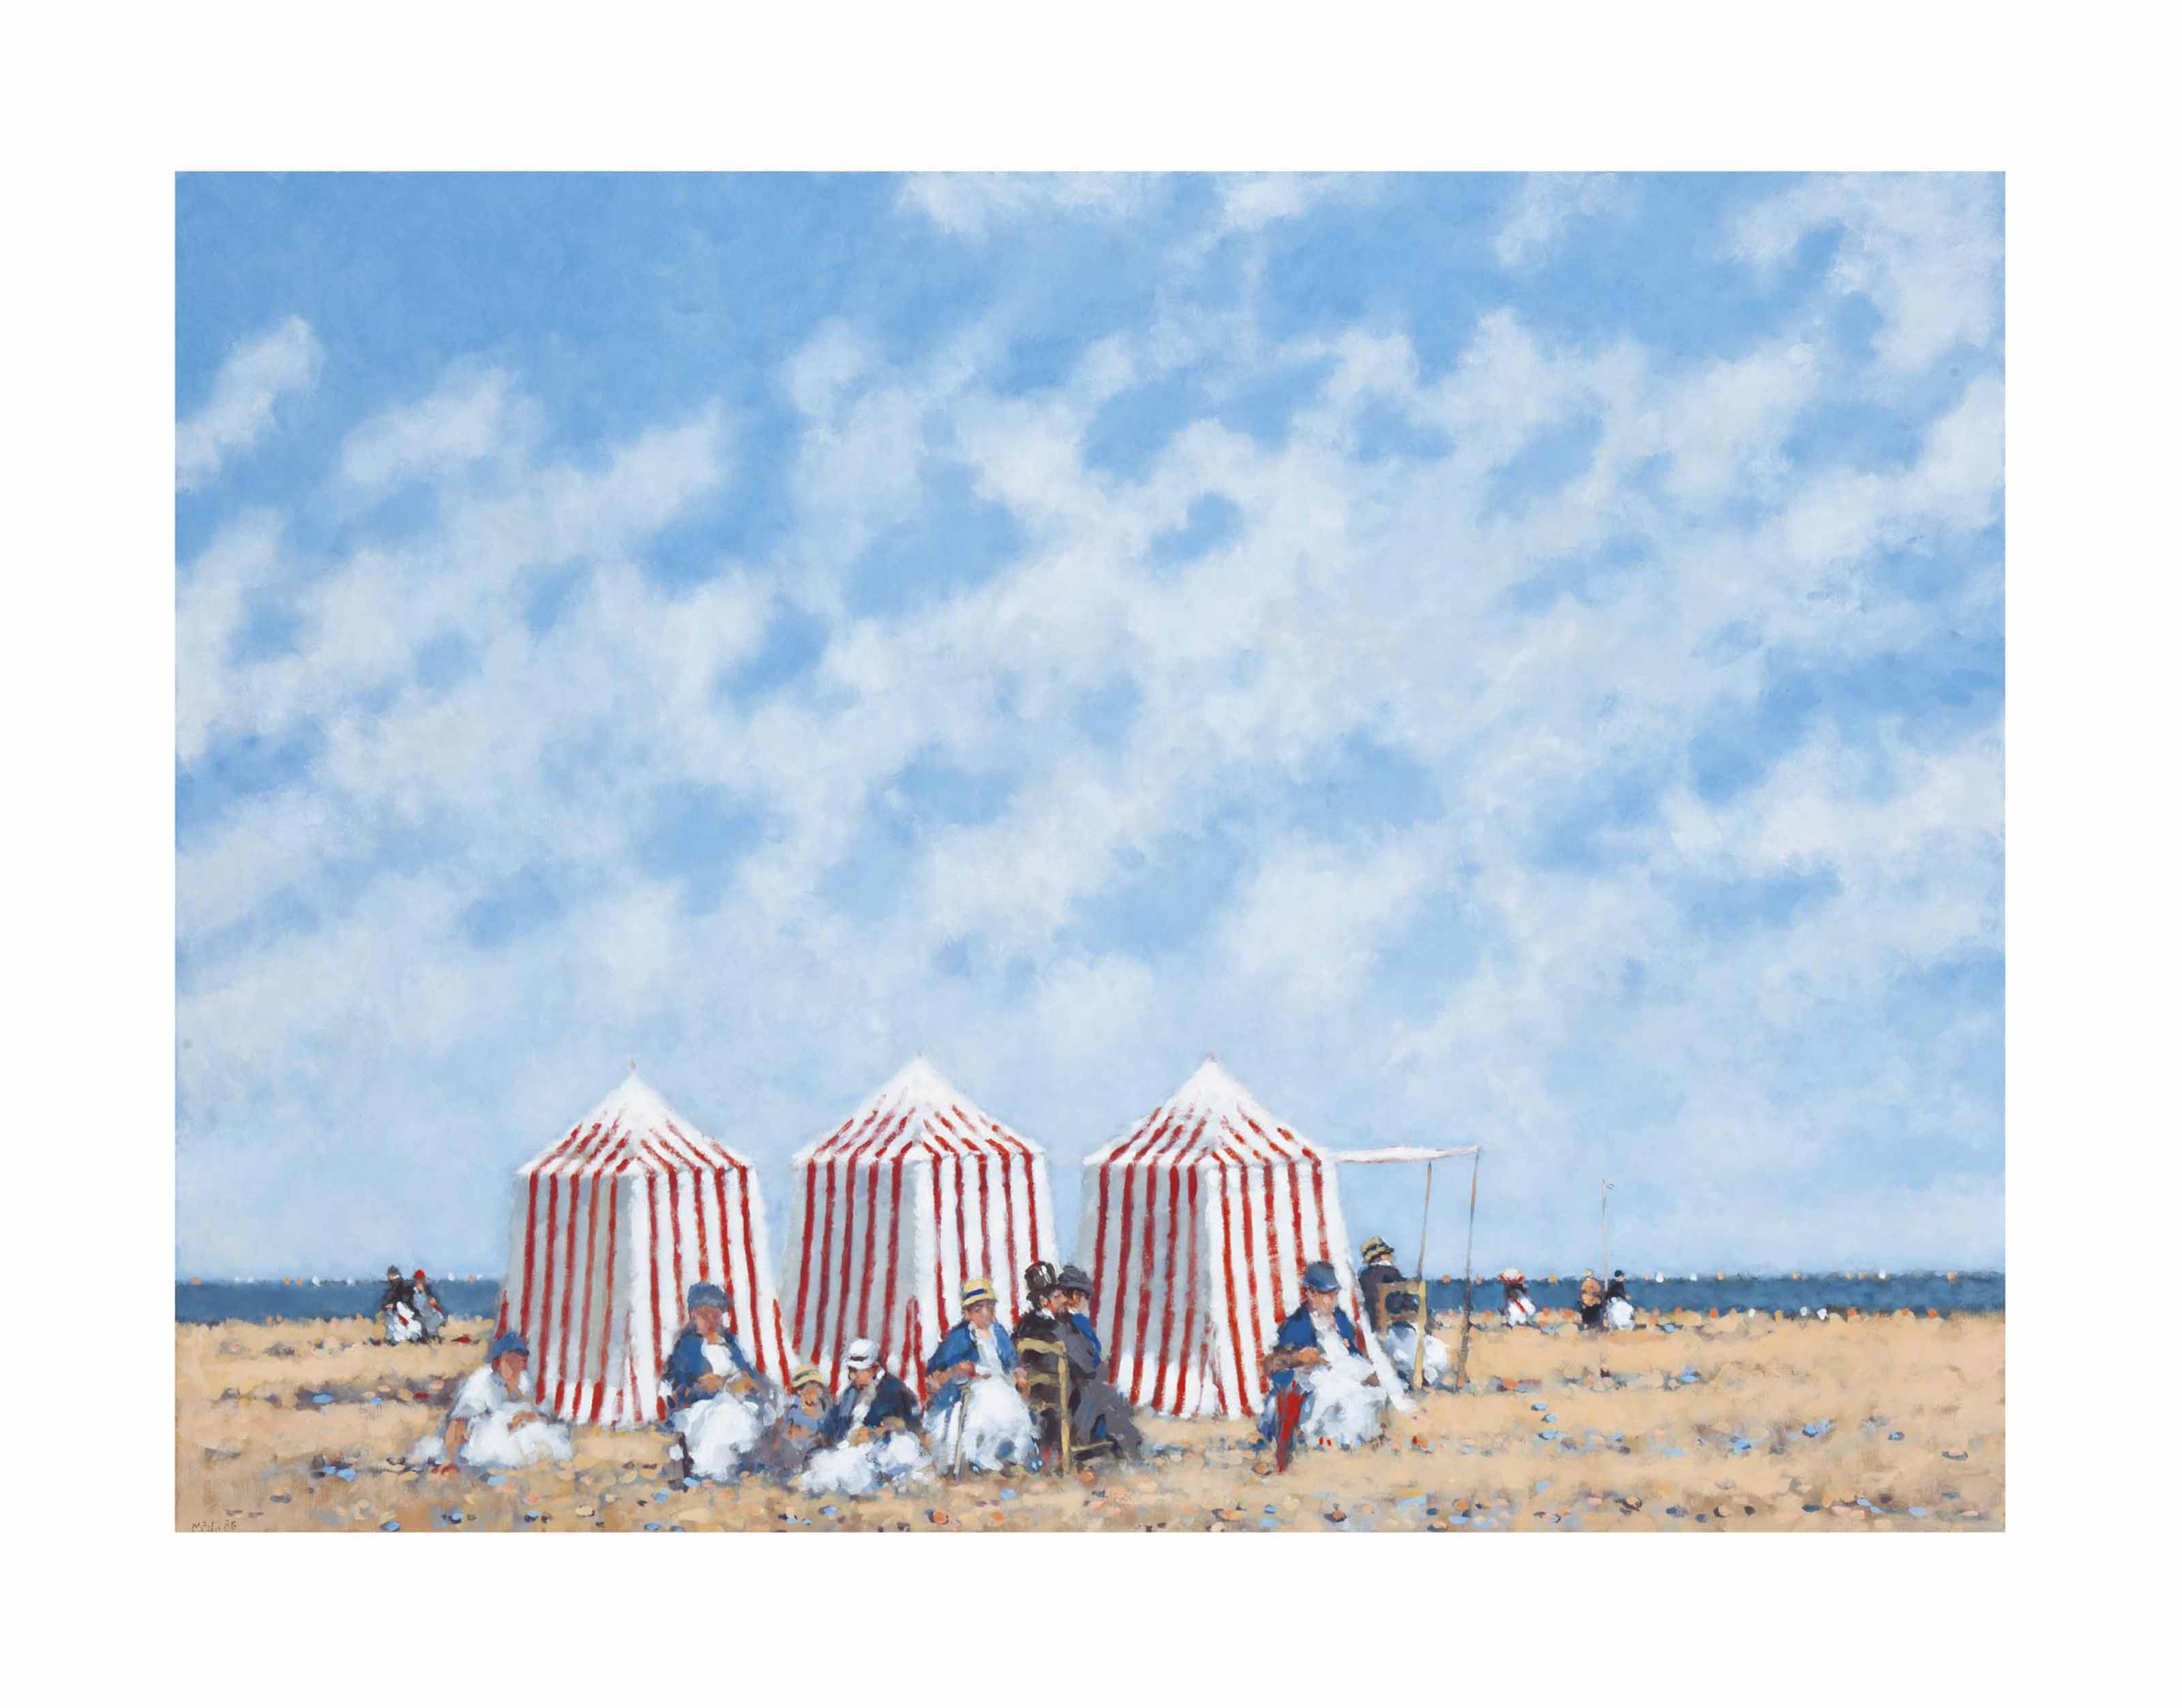 Figures with cabanas at the beach